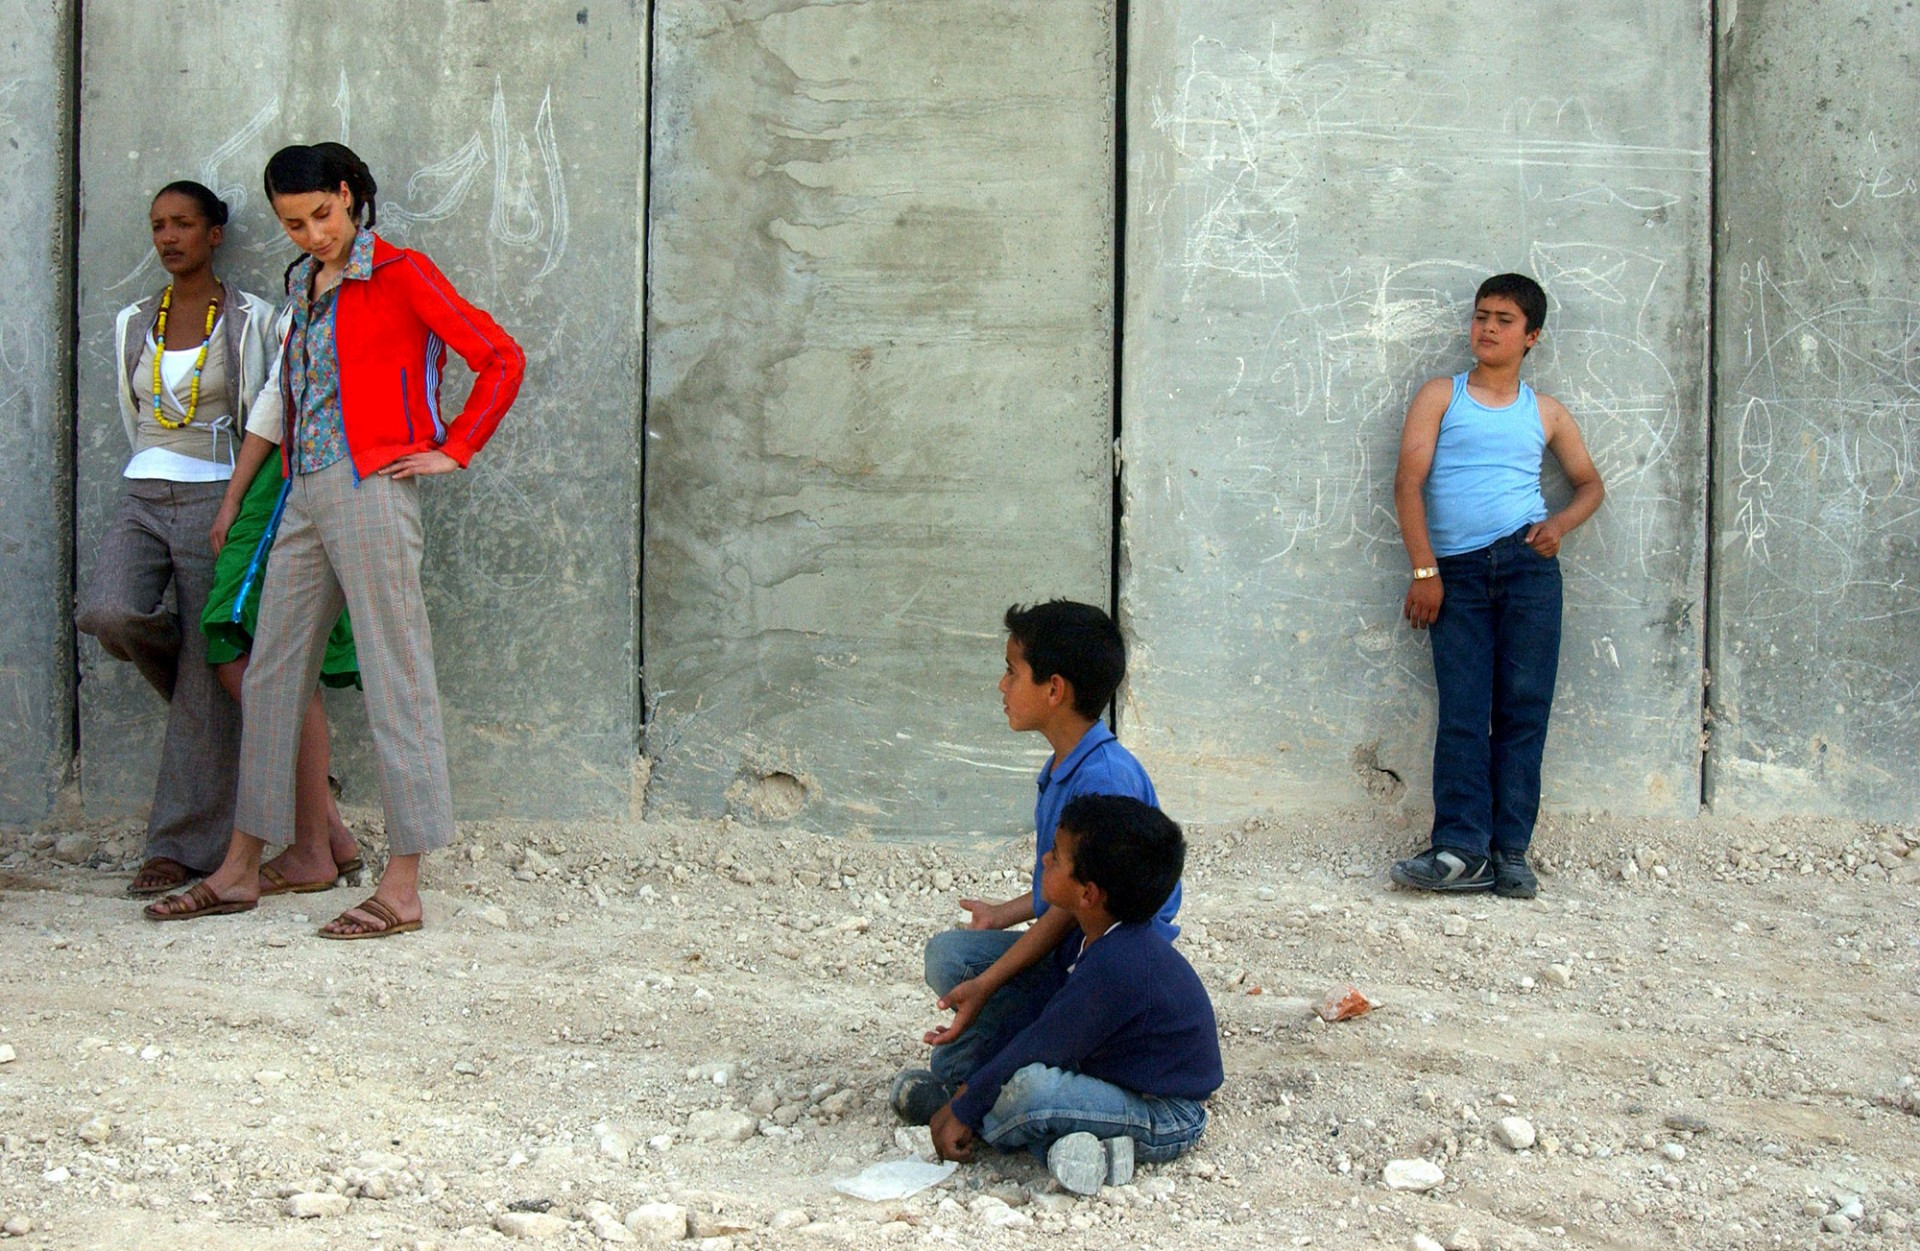 East Jerusalem neighborhood of Atur, 2004